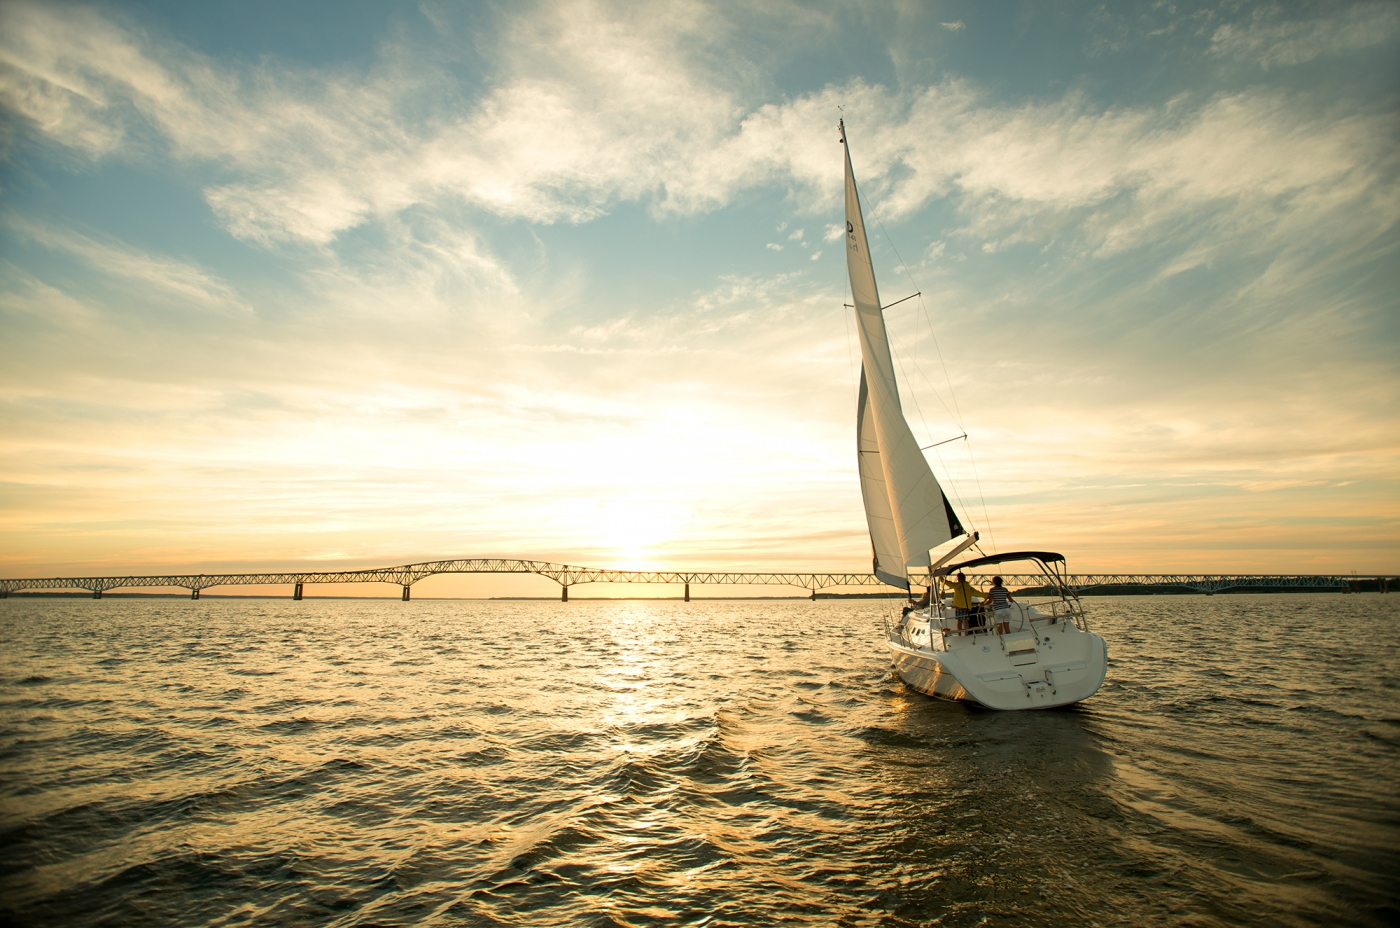 Sailing on the Chesapeake Bay. ©Mark Atkinson